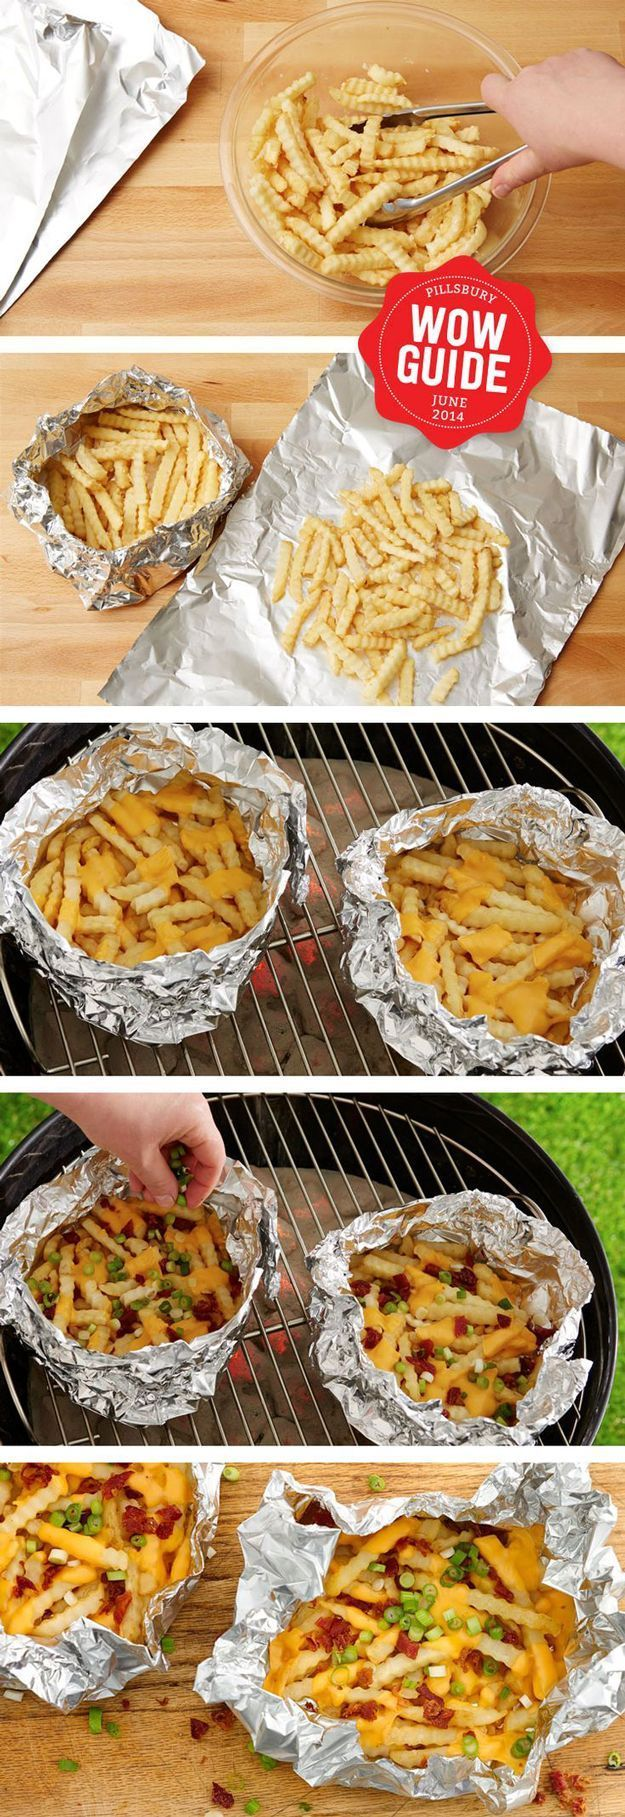 Grilled Foil Pack Cheesy Fries